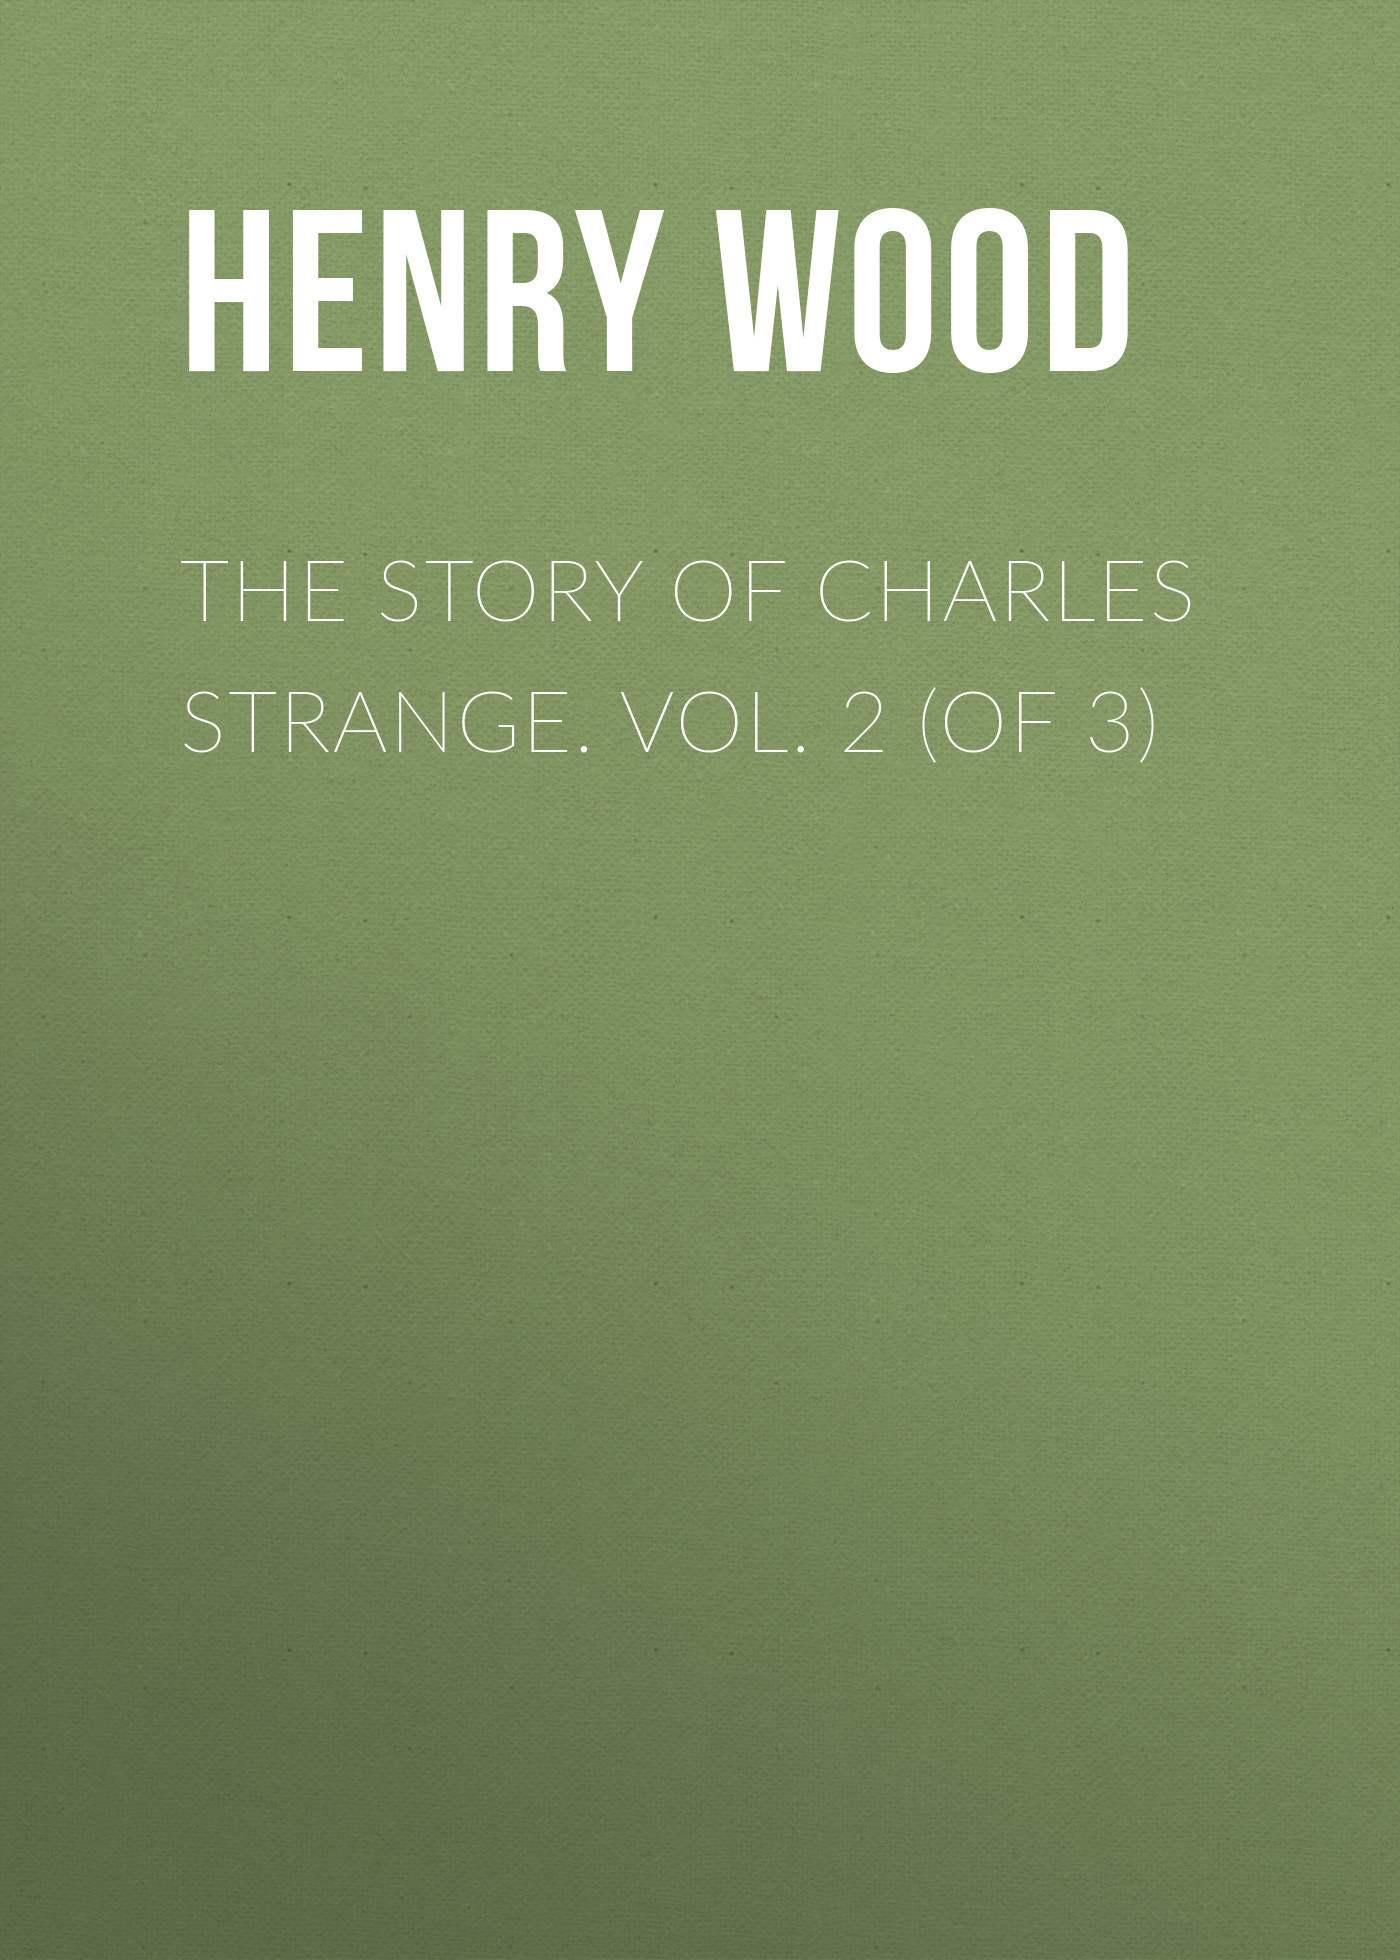 Henry Wood The Story of Charles Strange. Vol. 2 (of 3) henry wood mildred arkell vol 3 of 3